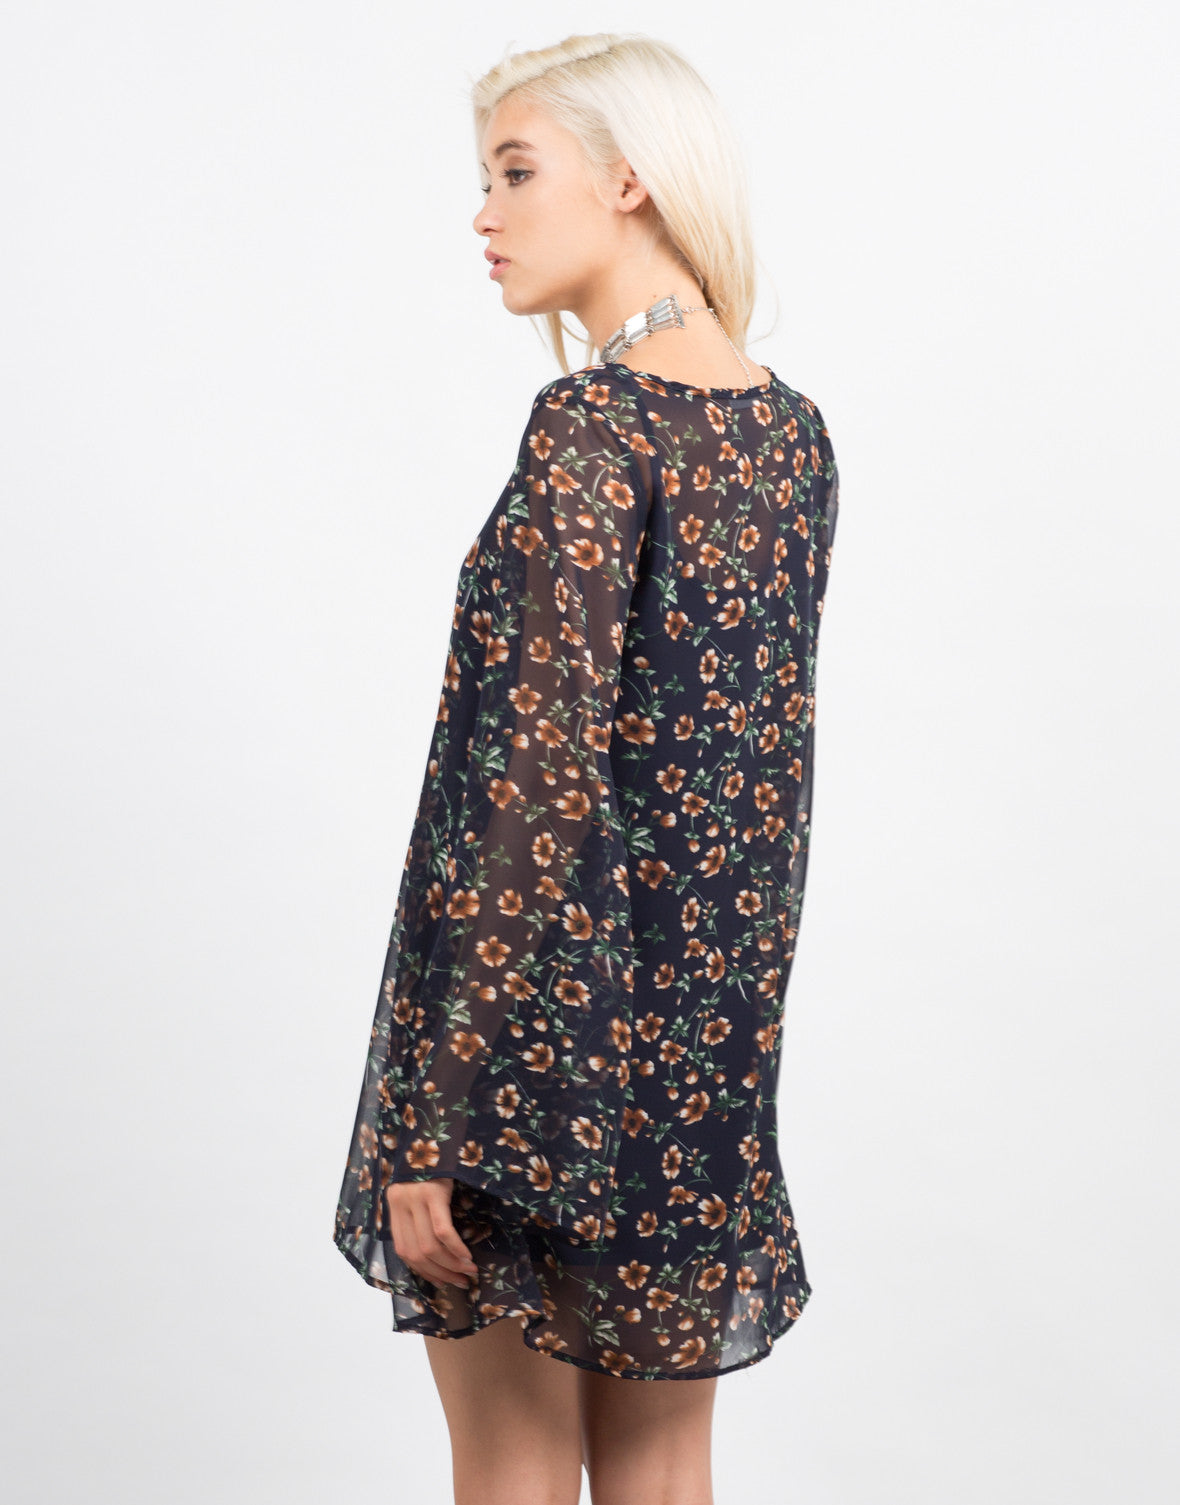 Back View of Chiffon Floral Dress